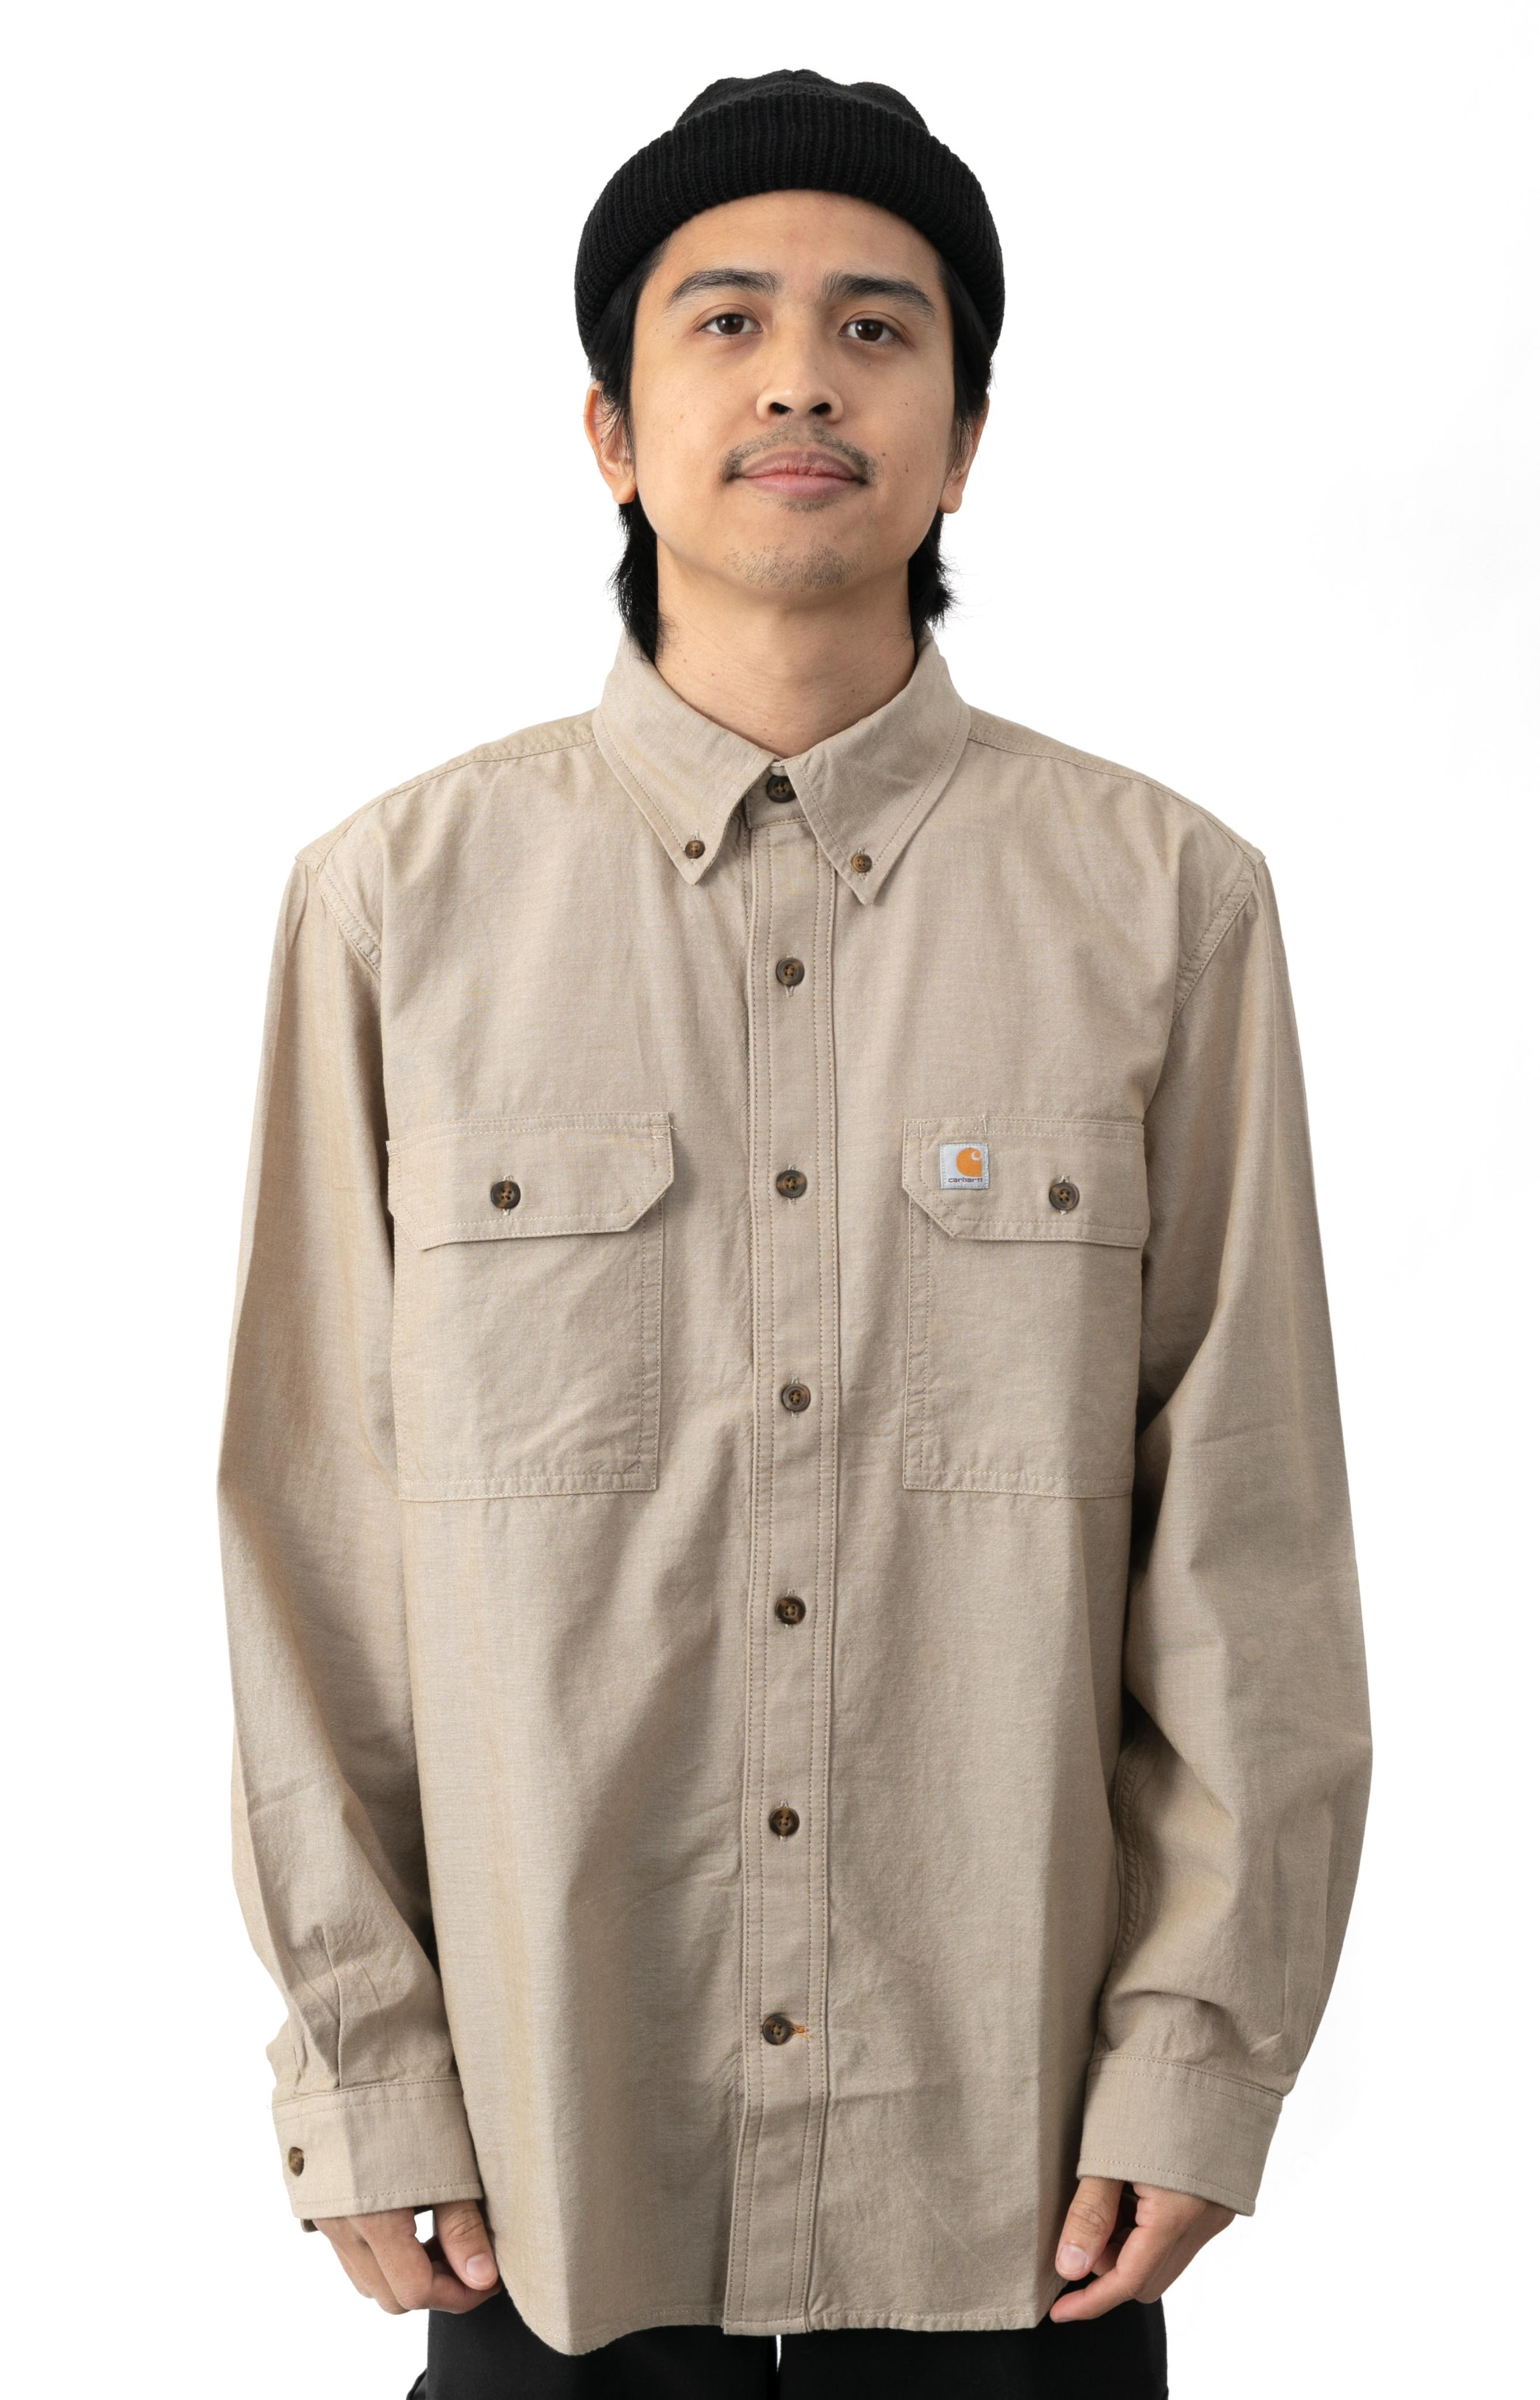 (104368) Original Fit Midweight L/S Button-Up Shirt - Dark Tan Chambray